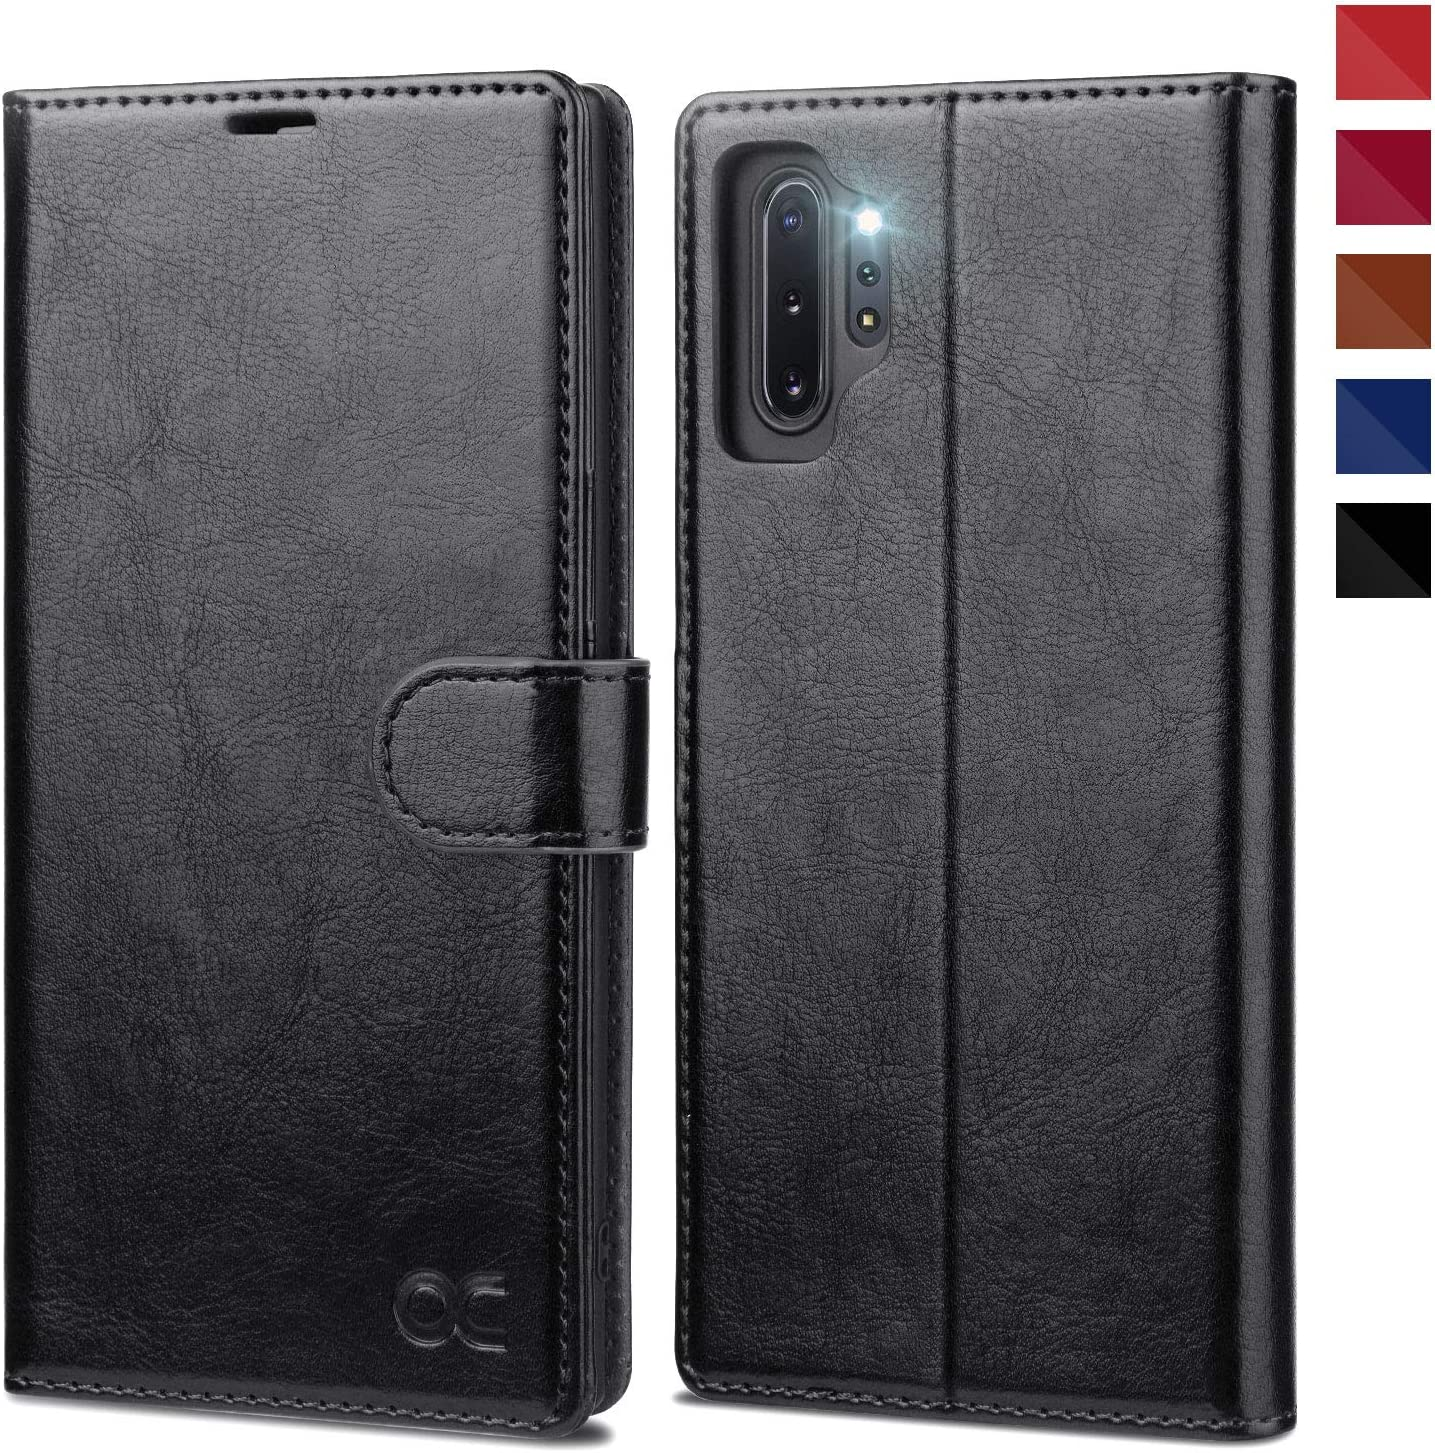 OCASE Galaxy Note 10 Plus Wallet Case, Note 10 Plus 5G Leather Flip Case with Card Holder Kickstand and Magnetic Closure, TPU Shockproof Phone Cover for Samsung Galaxy Note10 Plus 6.8 Inch (Black)